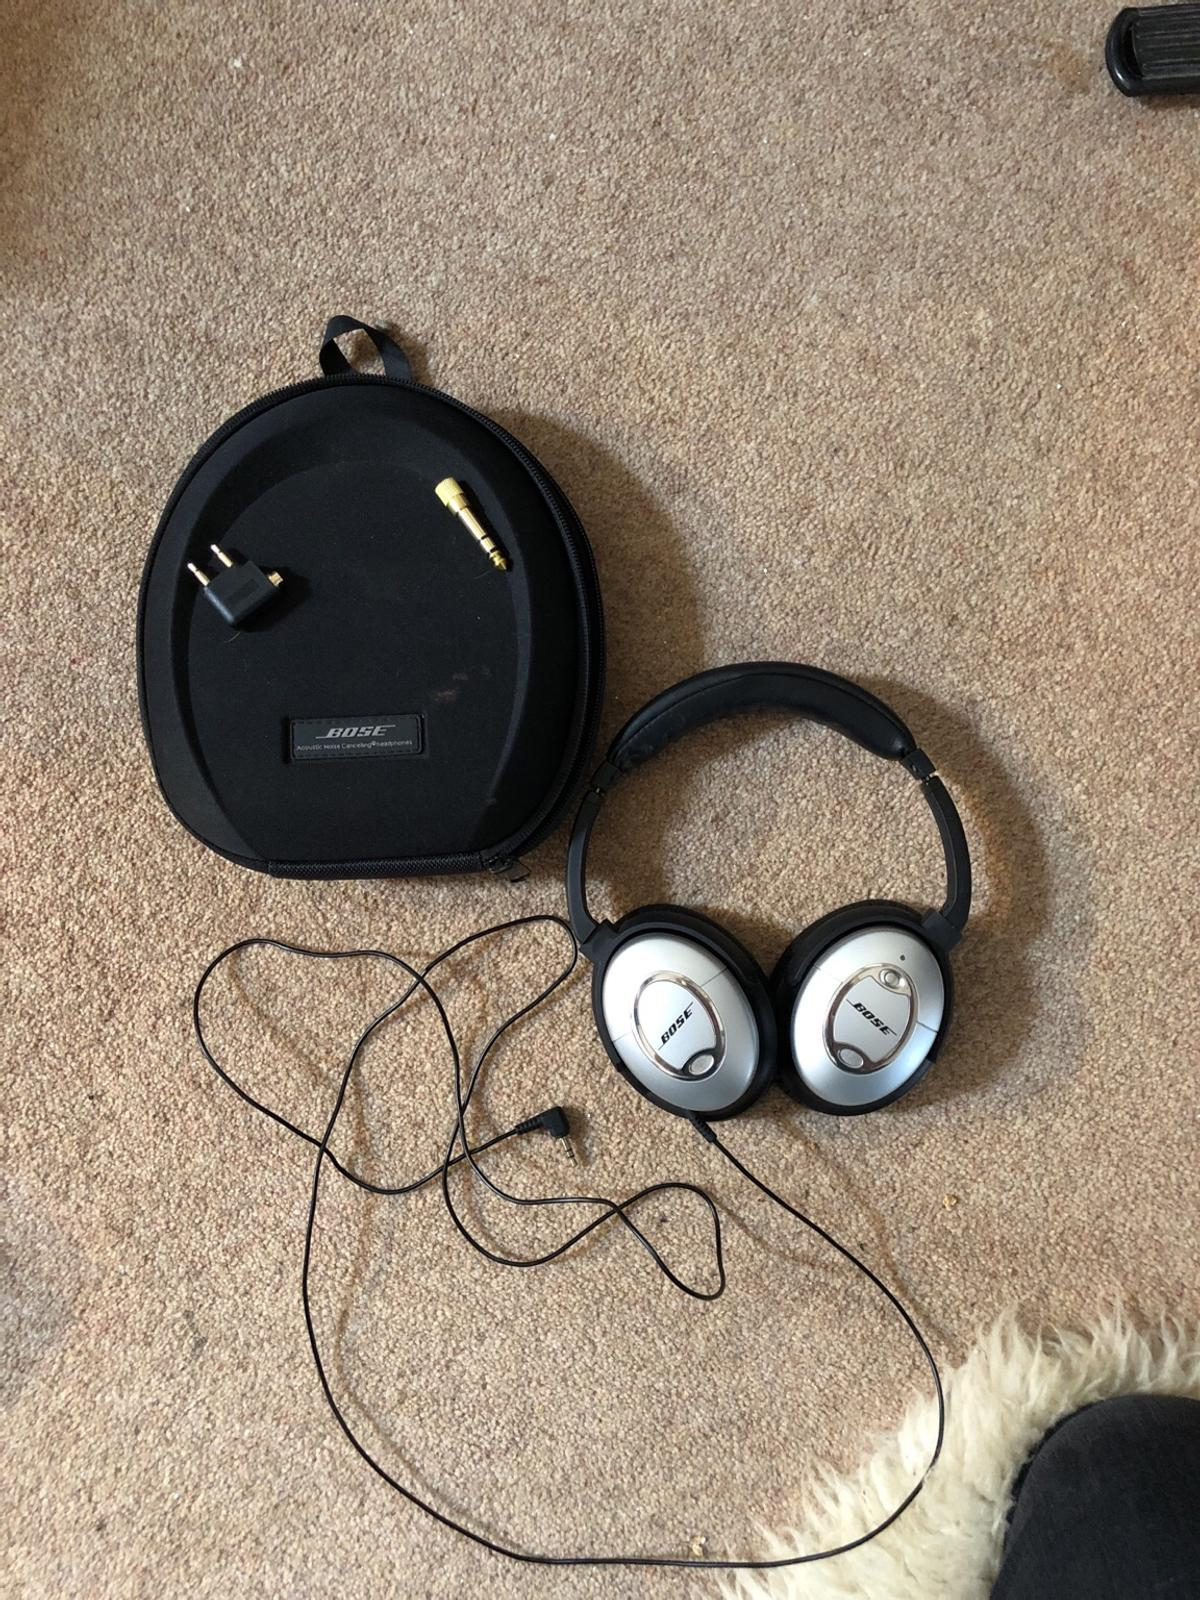 31fdd99e0cc BOSE qc15 wired noise cancelling headphones in BD23 Craven for ...